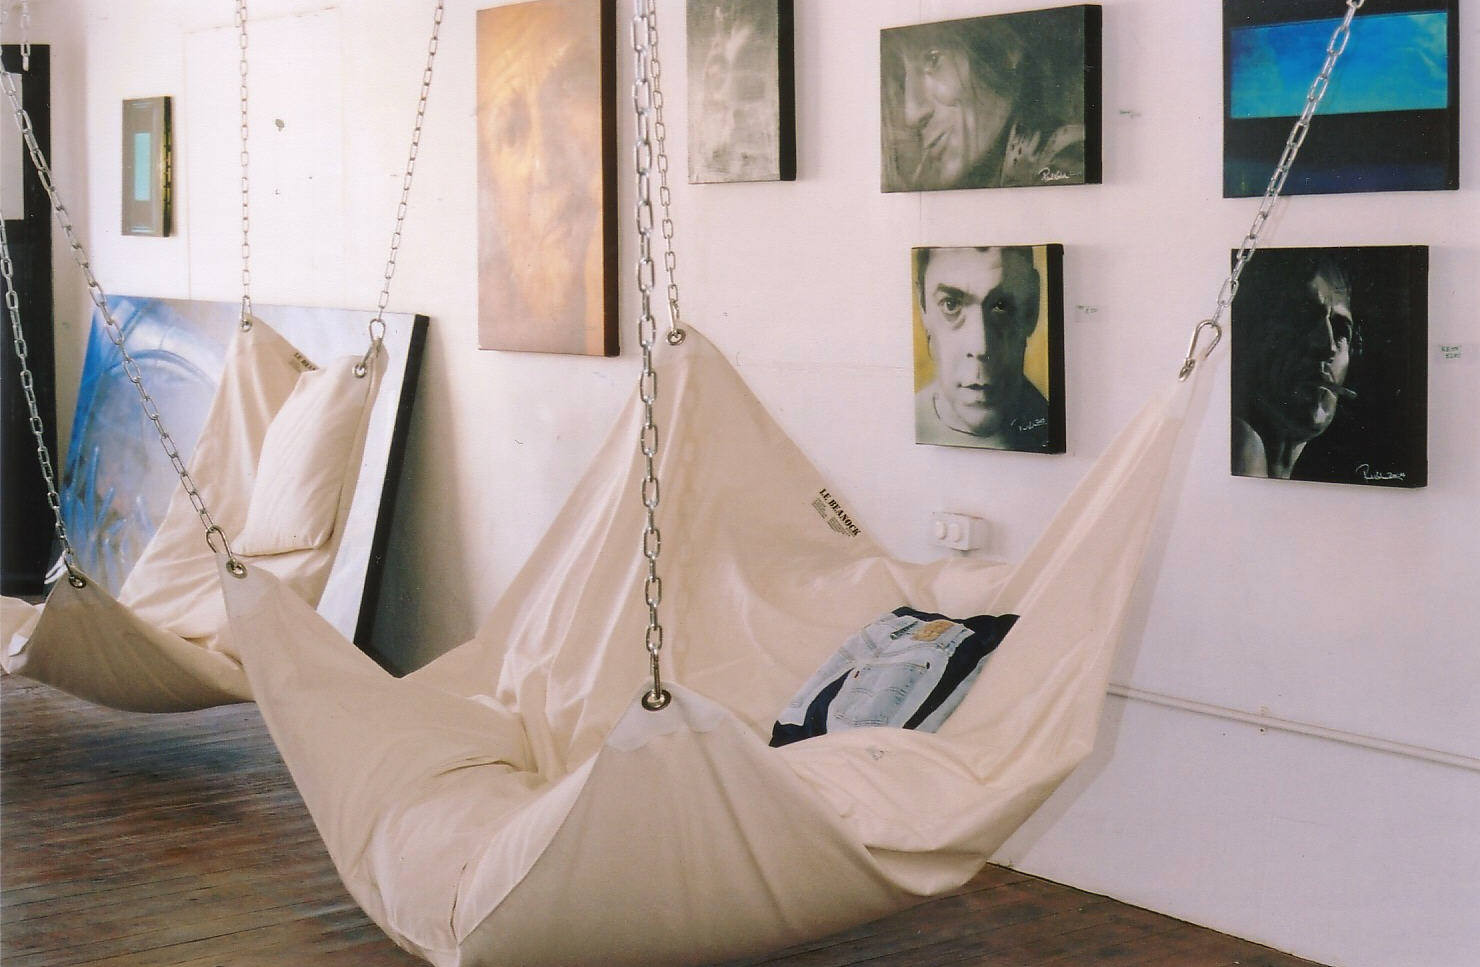 Hammock Chairs for Bedroom | Interesting Ideas for Home